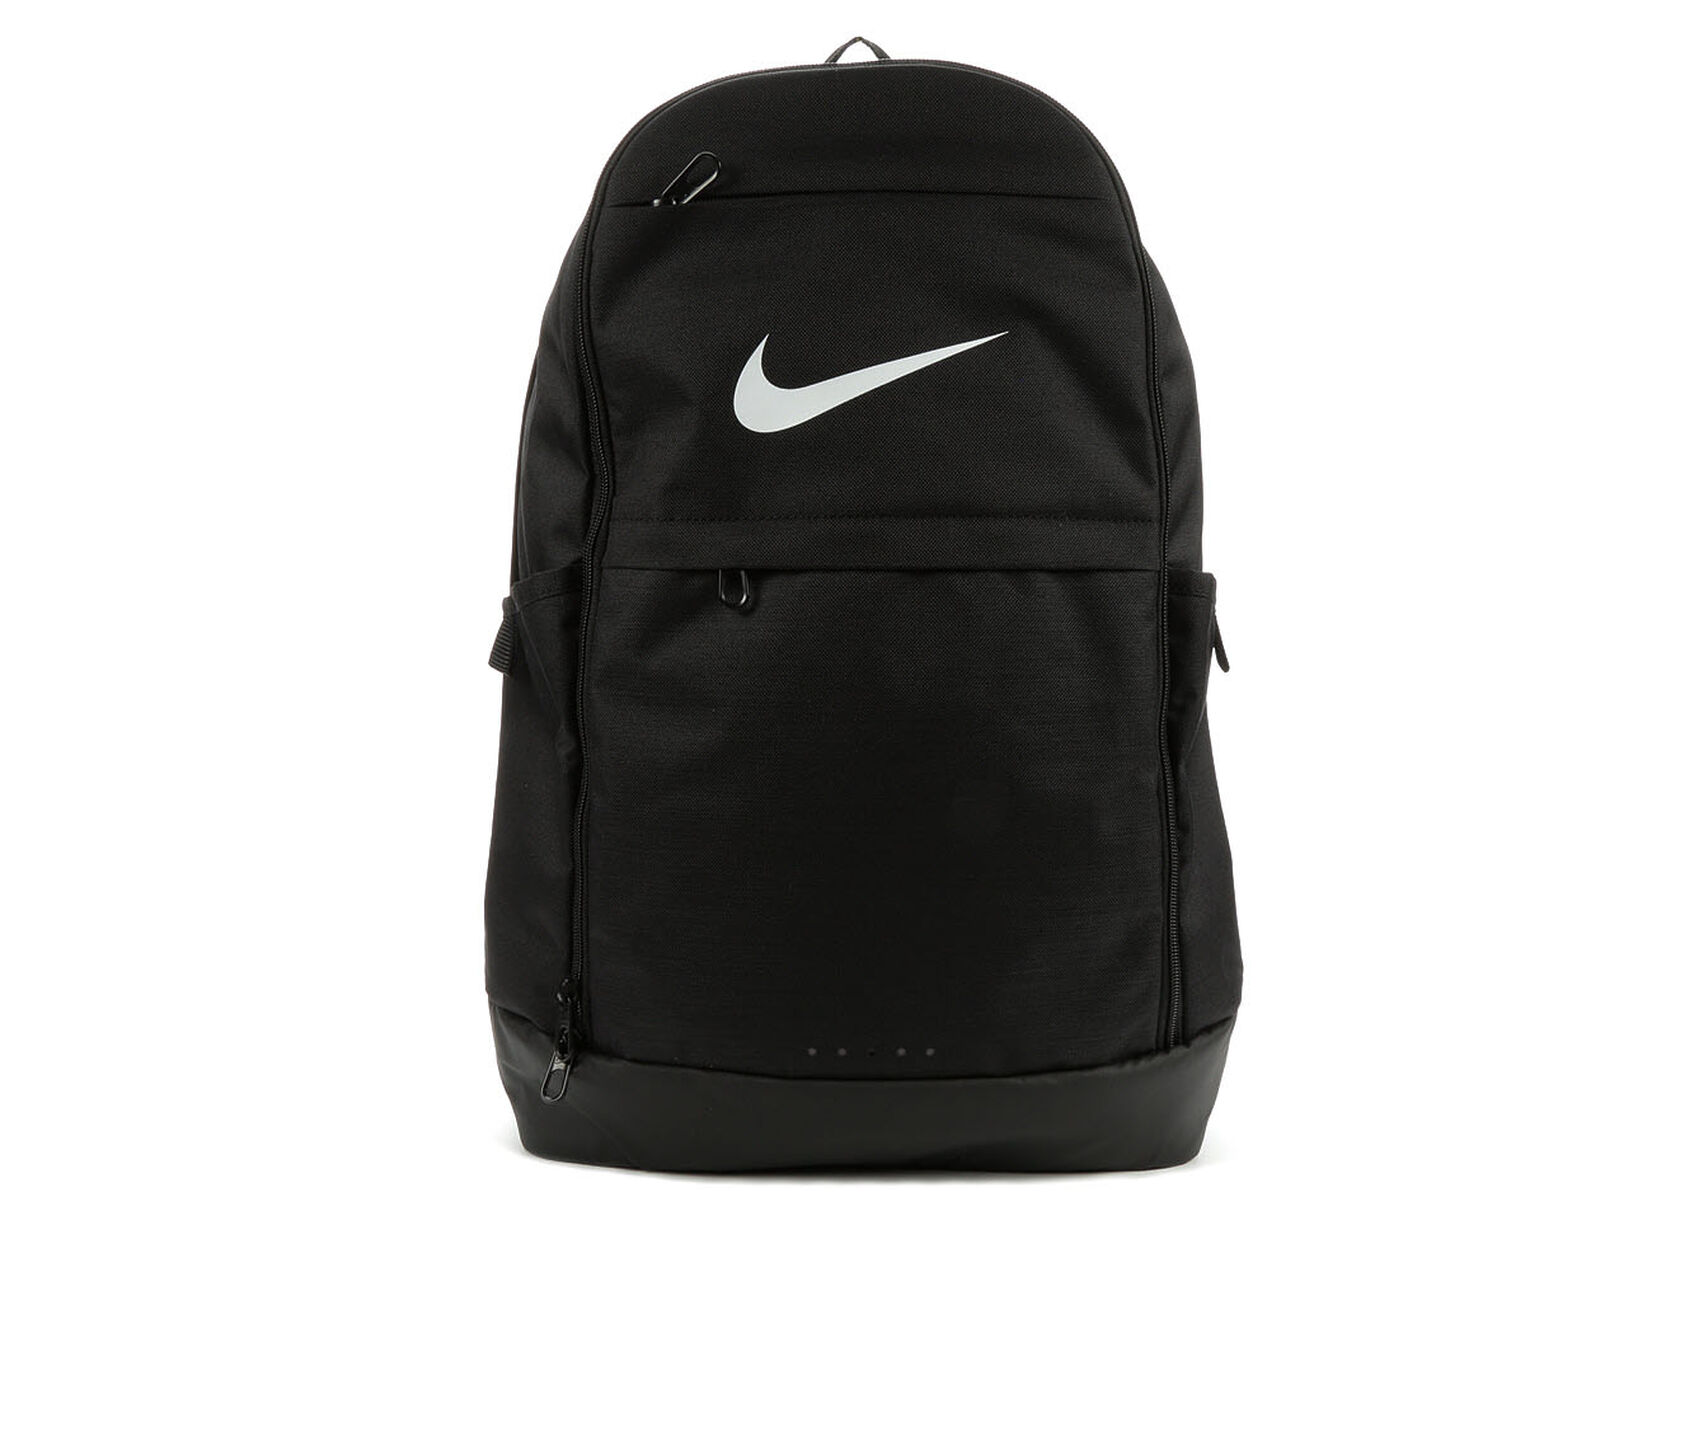 a9d6c885eb Nike Brasilia XL Backpack. Previous